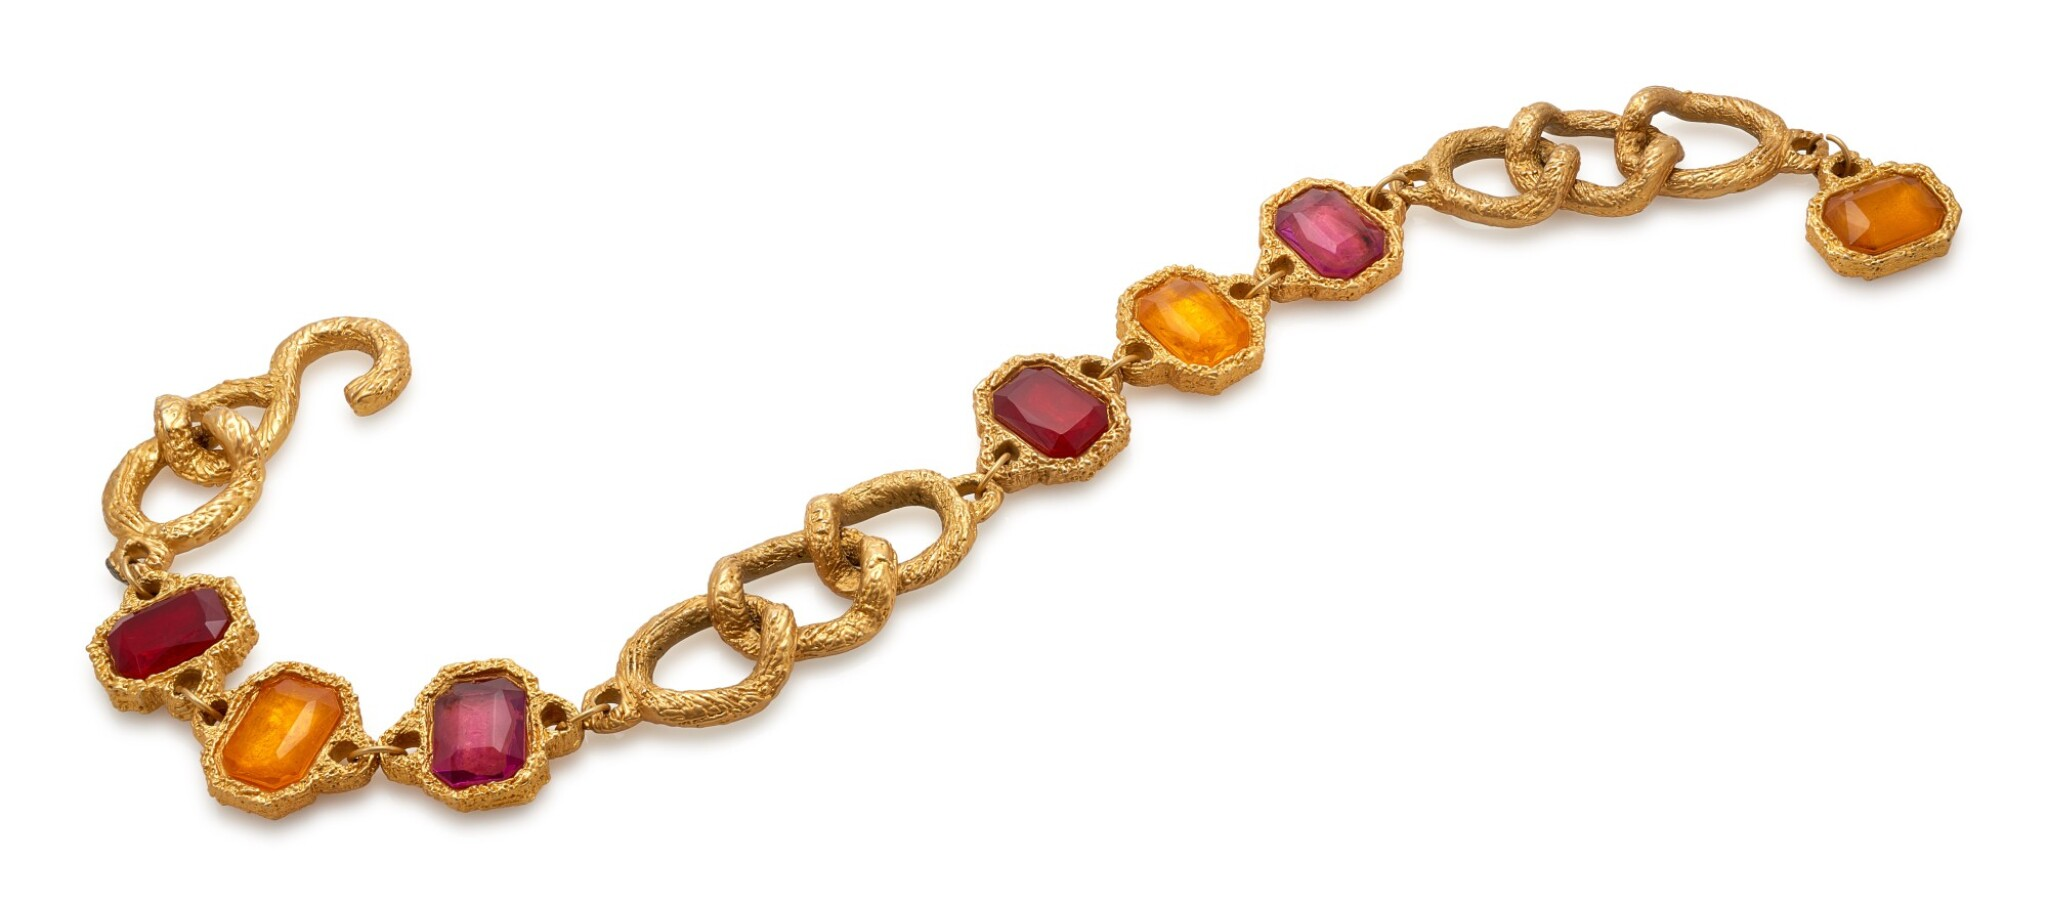 RED AND ORANGE GRIPOIX AND GOLD-TONE METAL BELT, CHANEL